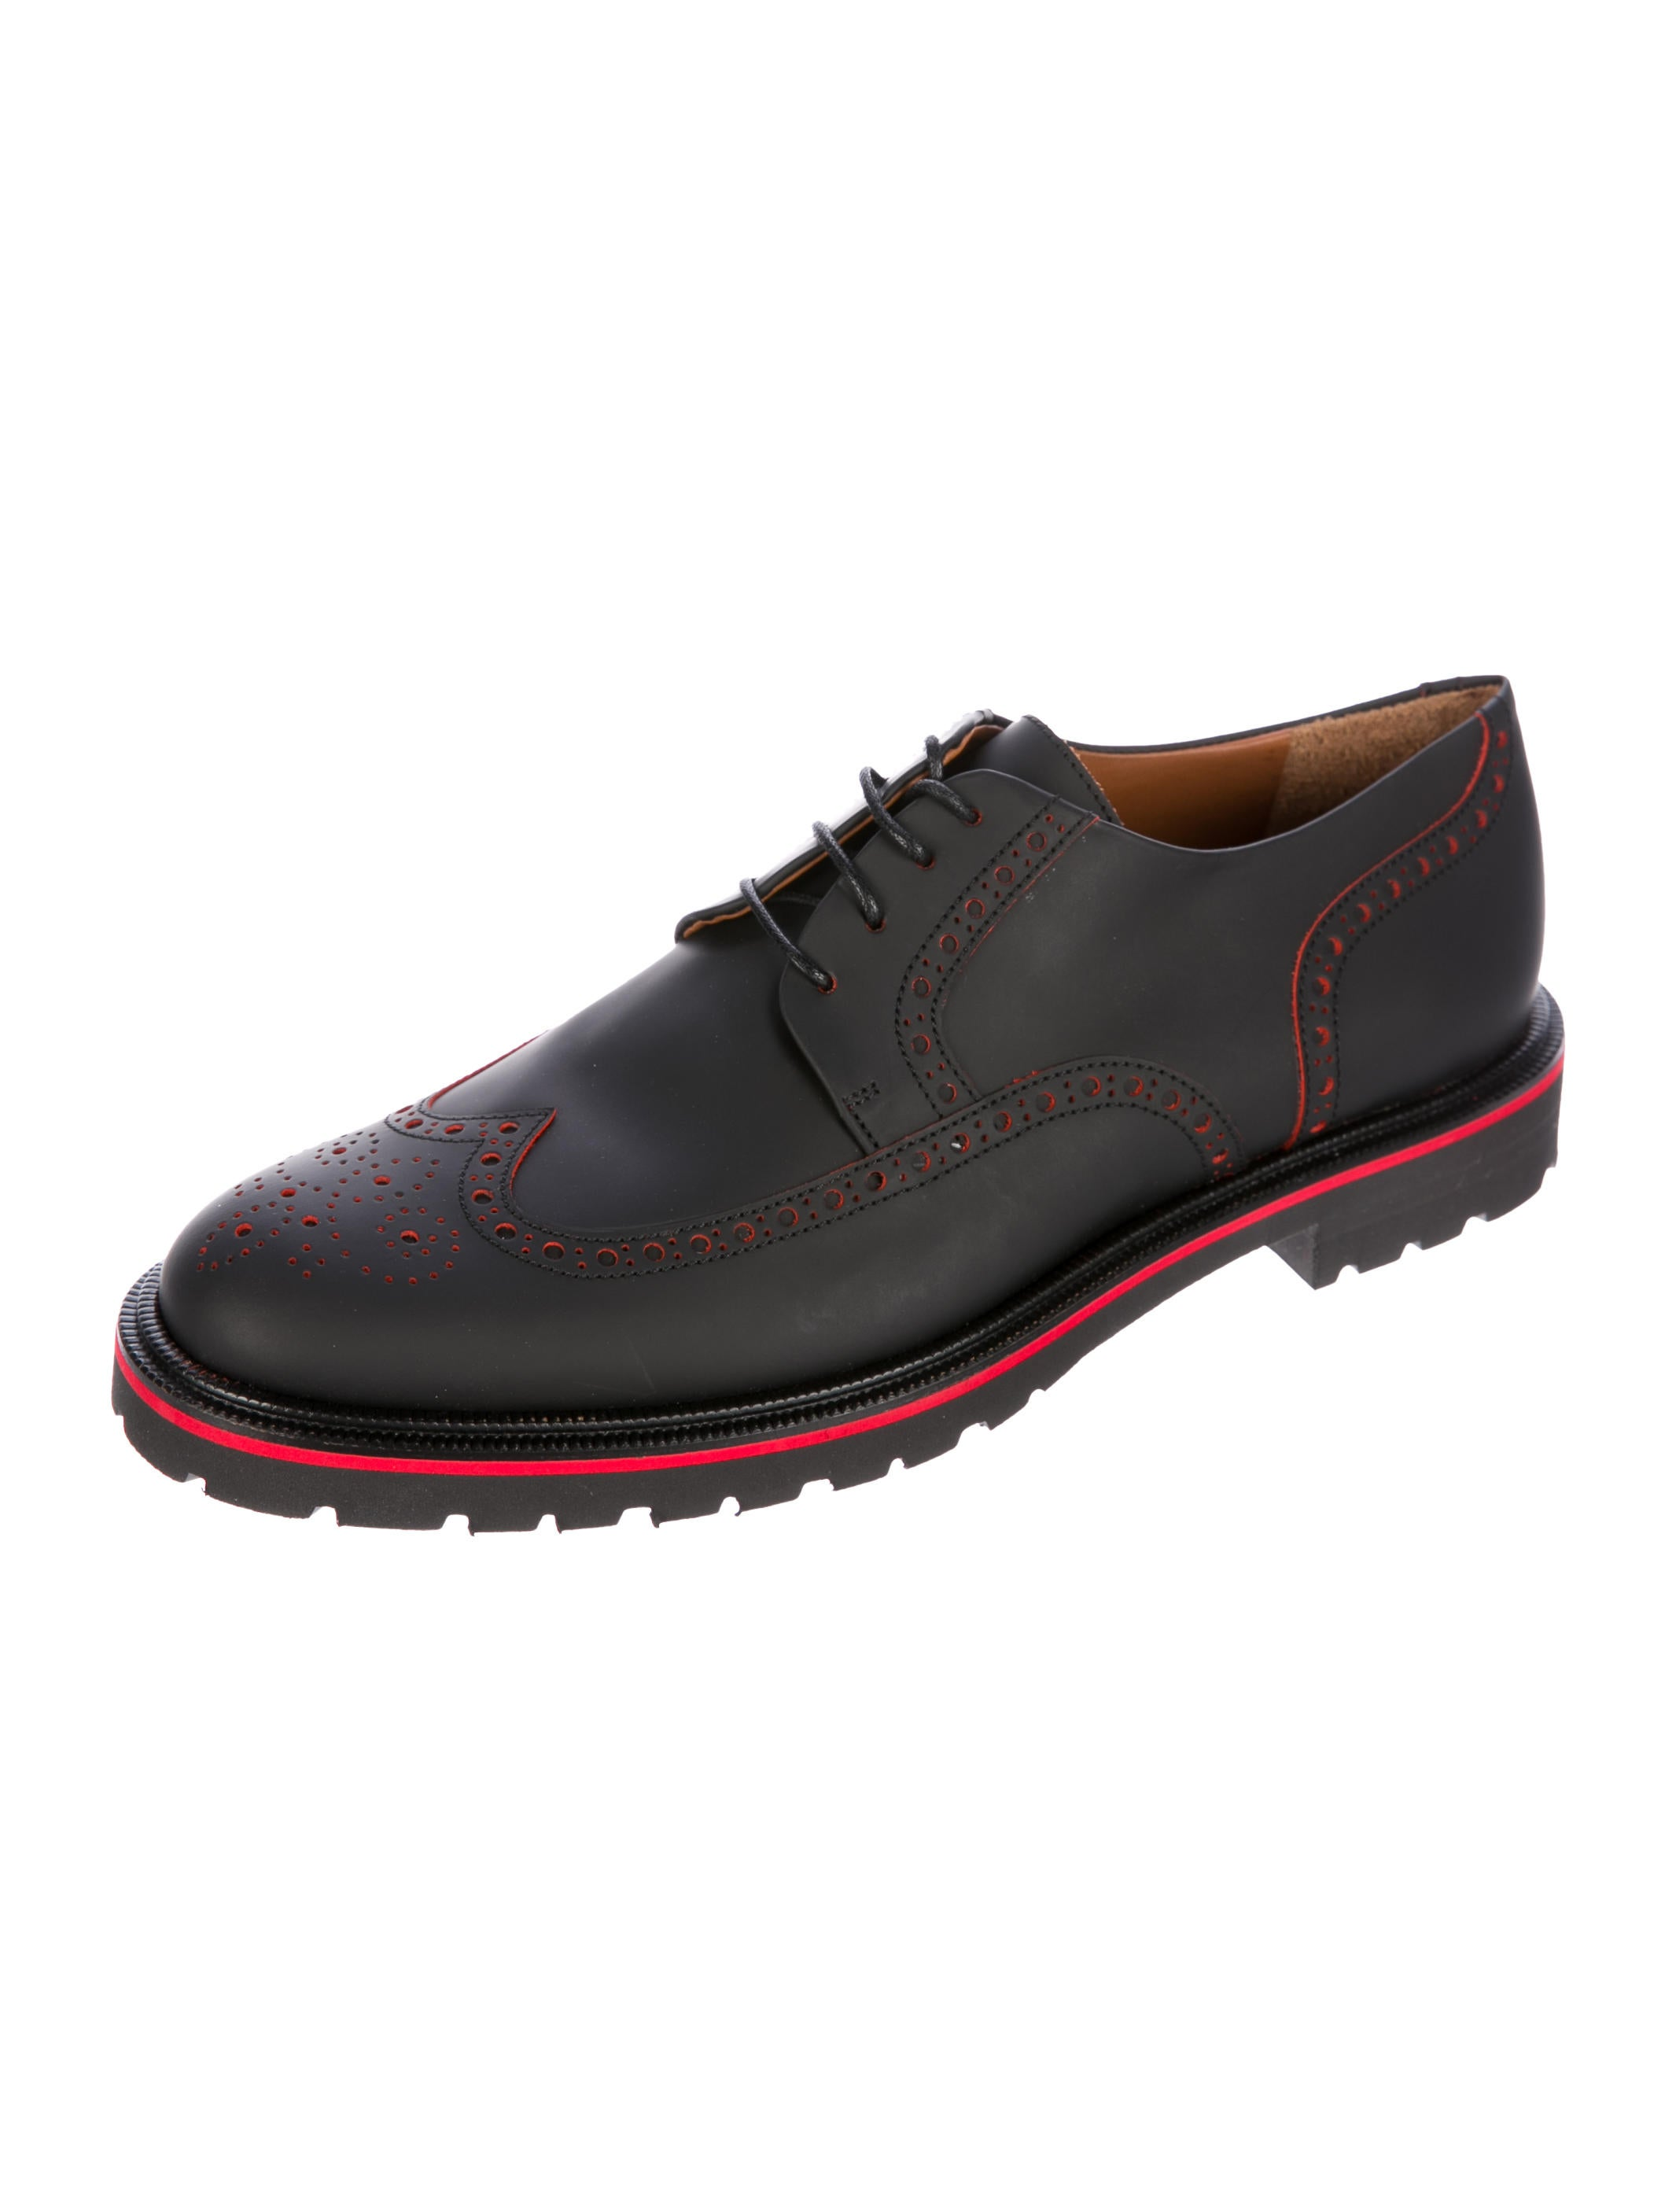 free shipping new outlet lowest price Sartore Matte Leather Oxfords fake cheap online outlet really buy cheap under $60 fSzBNGuLSA